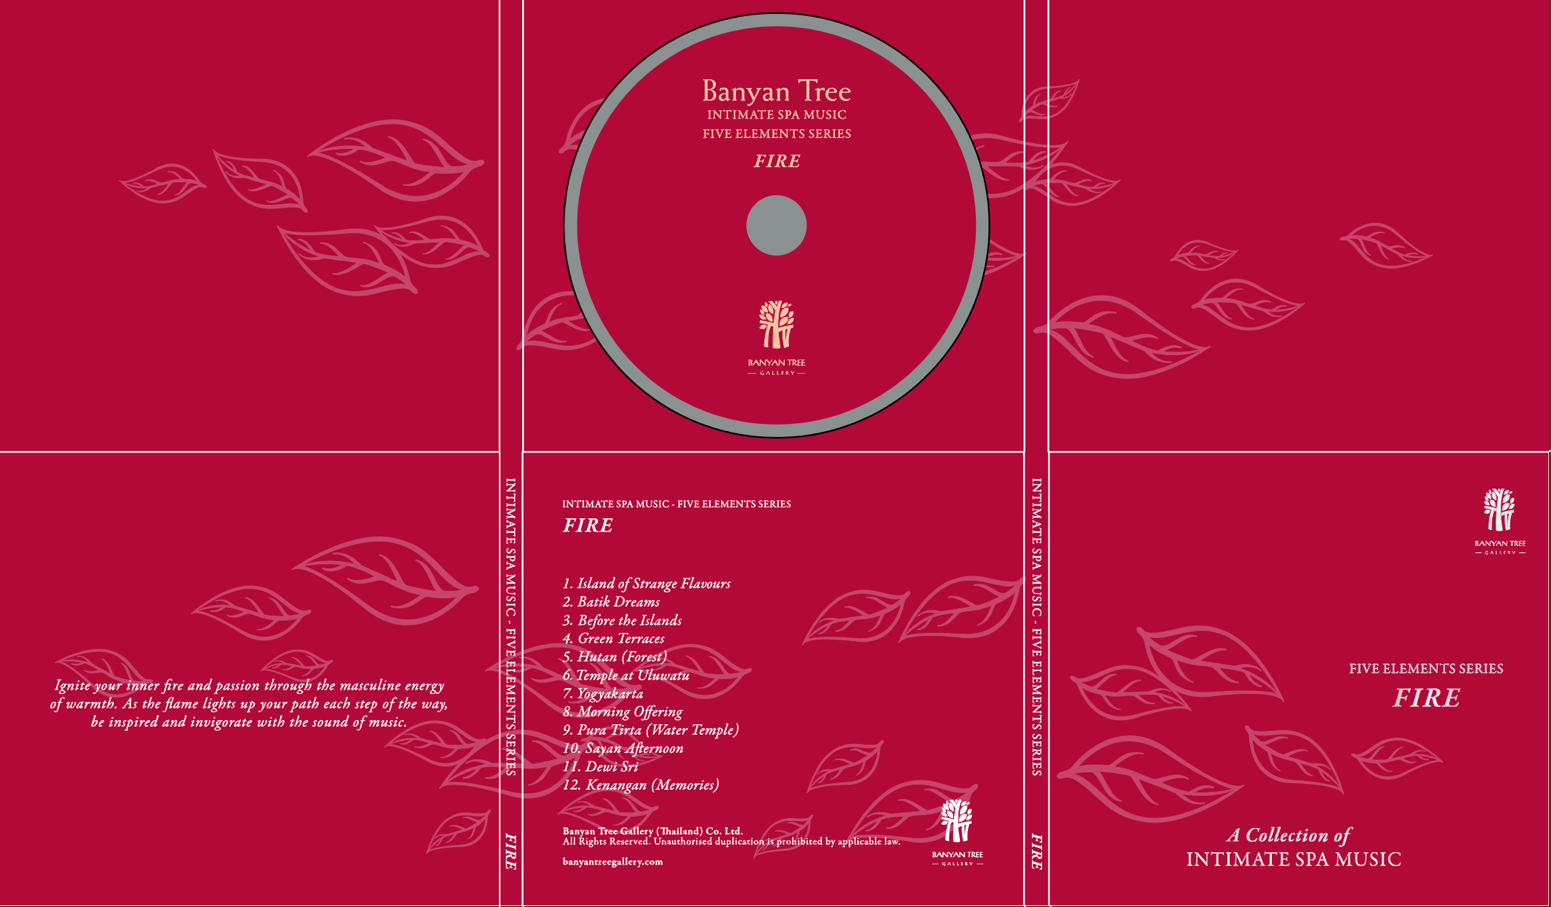 Banyan Tree Resort & Spa / 5 Elements Series CD Vol.4 'FIRE' ( Indonesian ) Themed